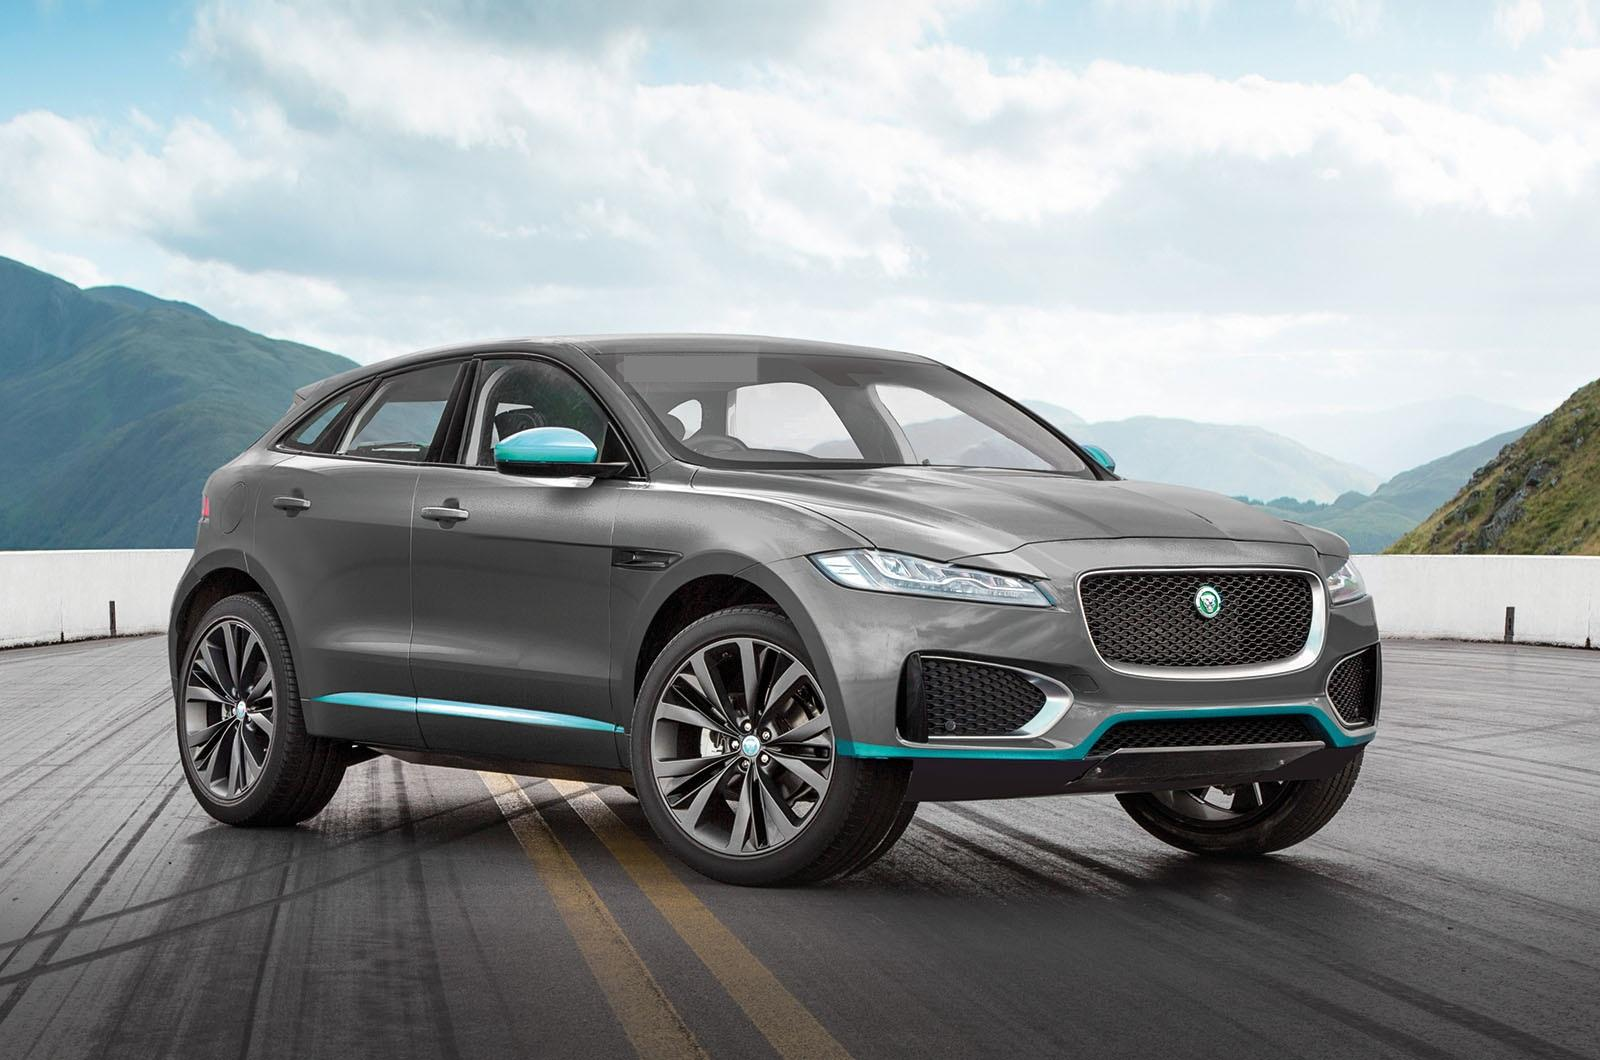 New jaguar E-Pace 2019 EV Prices